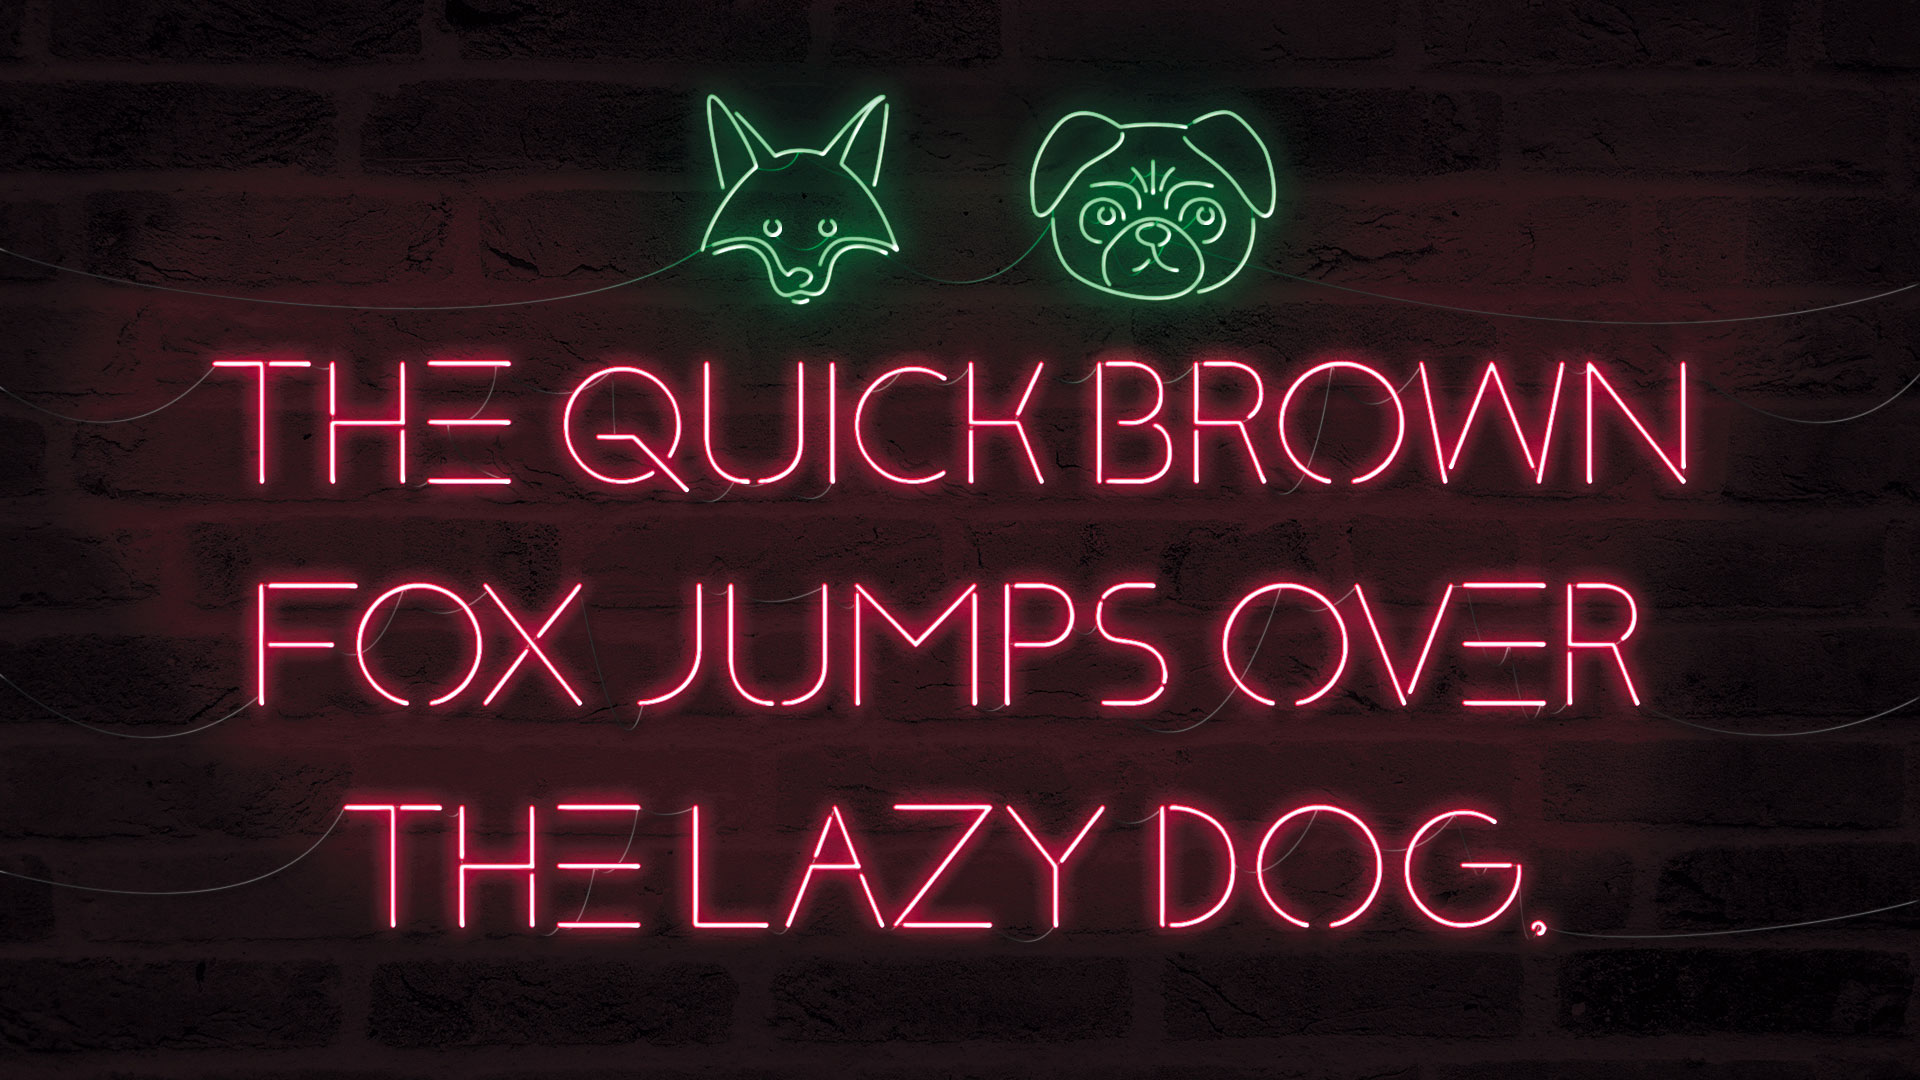 Create a glowing neon text effect | Creative Bloq